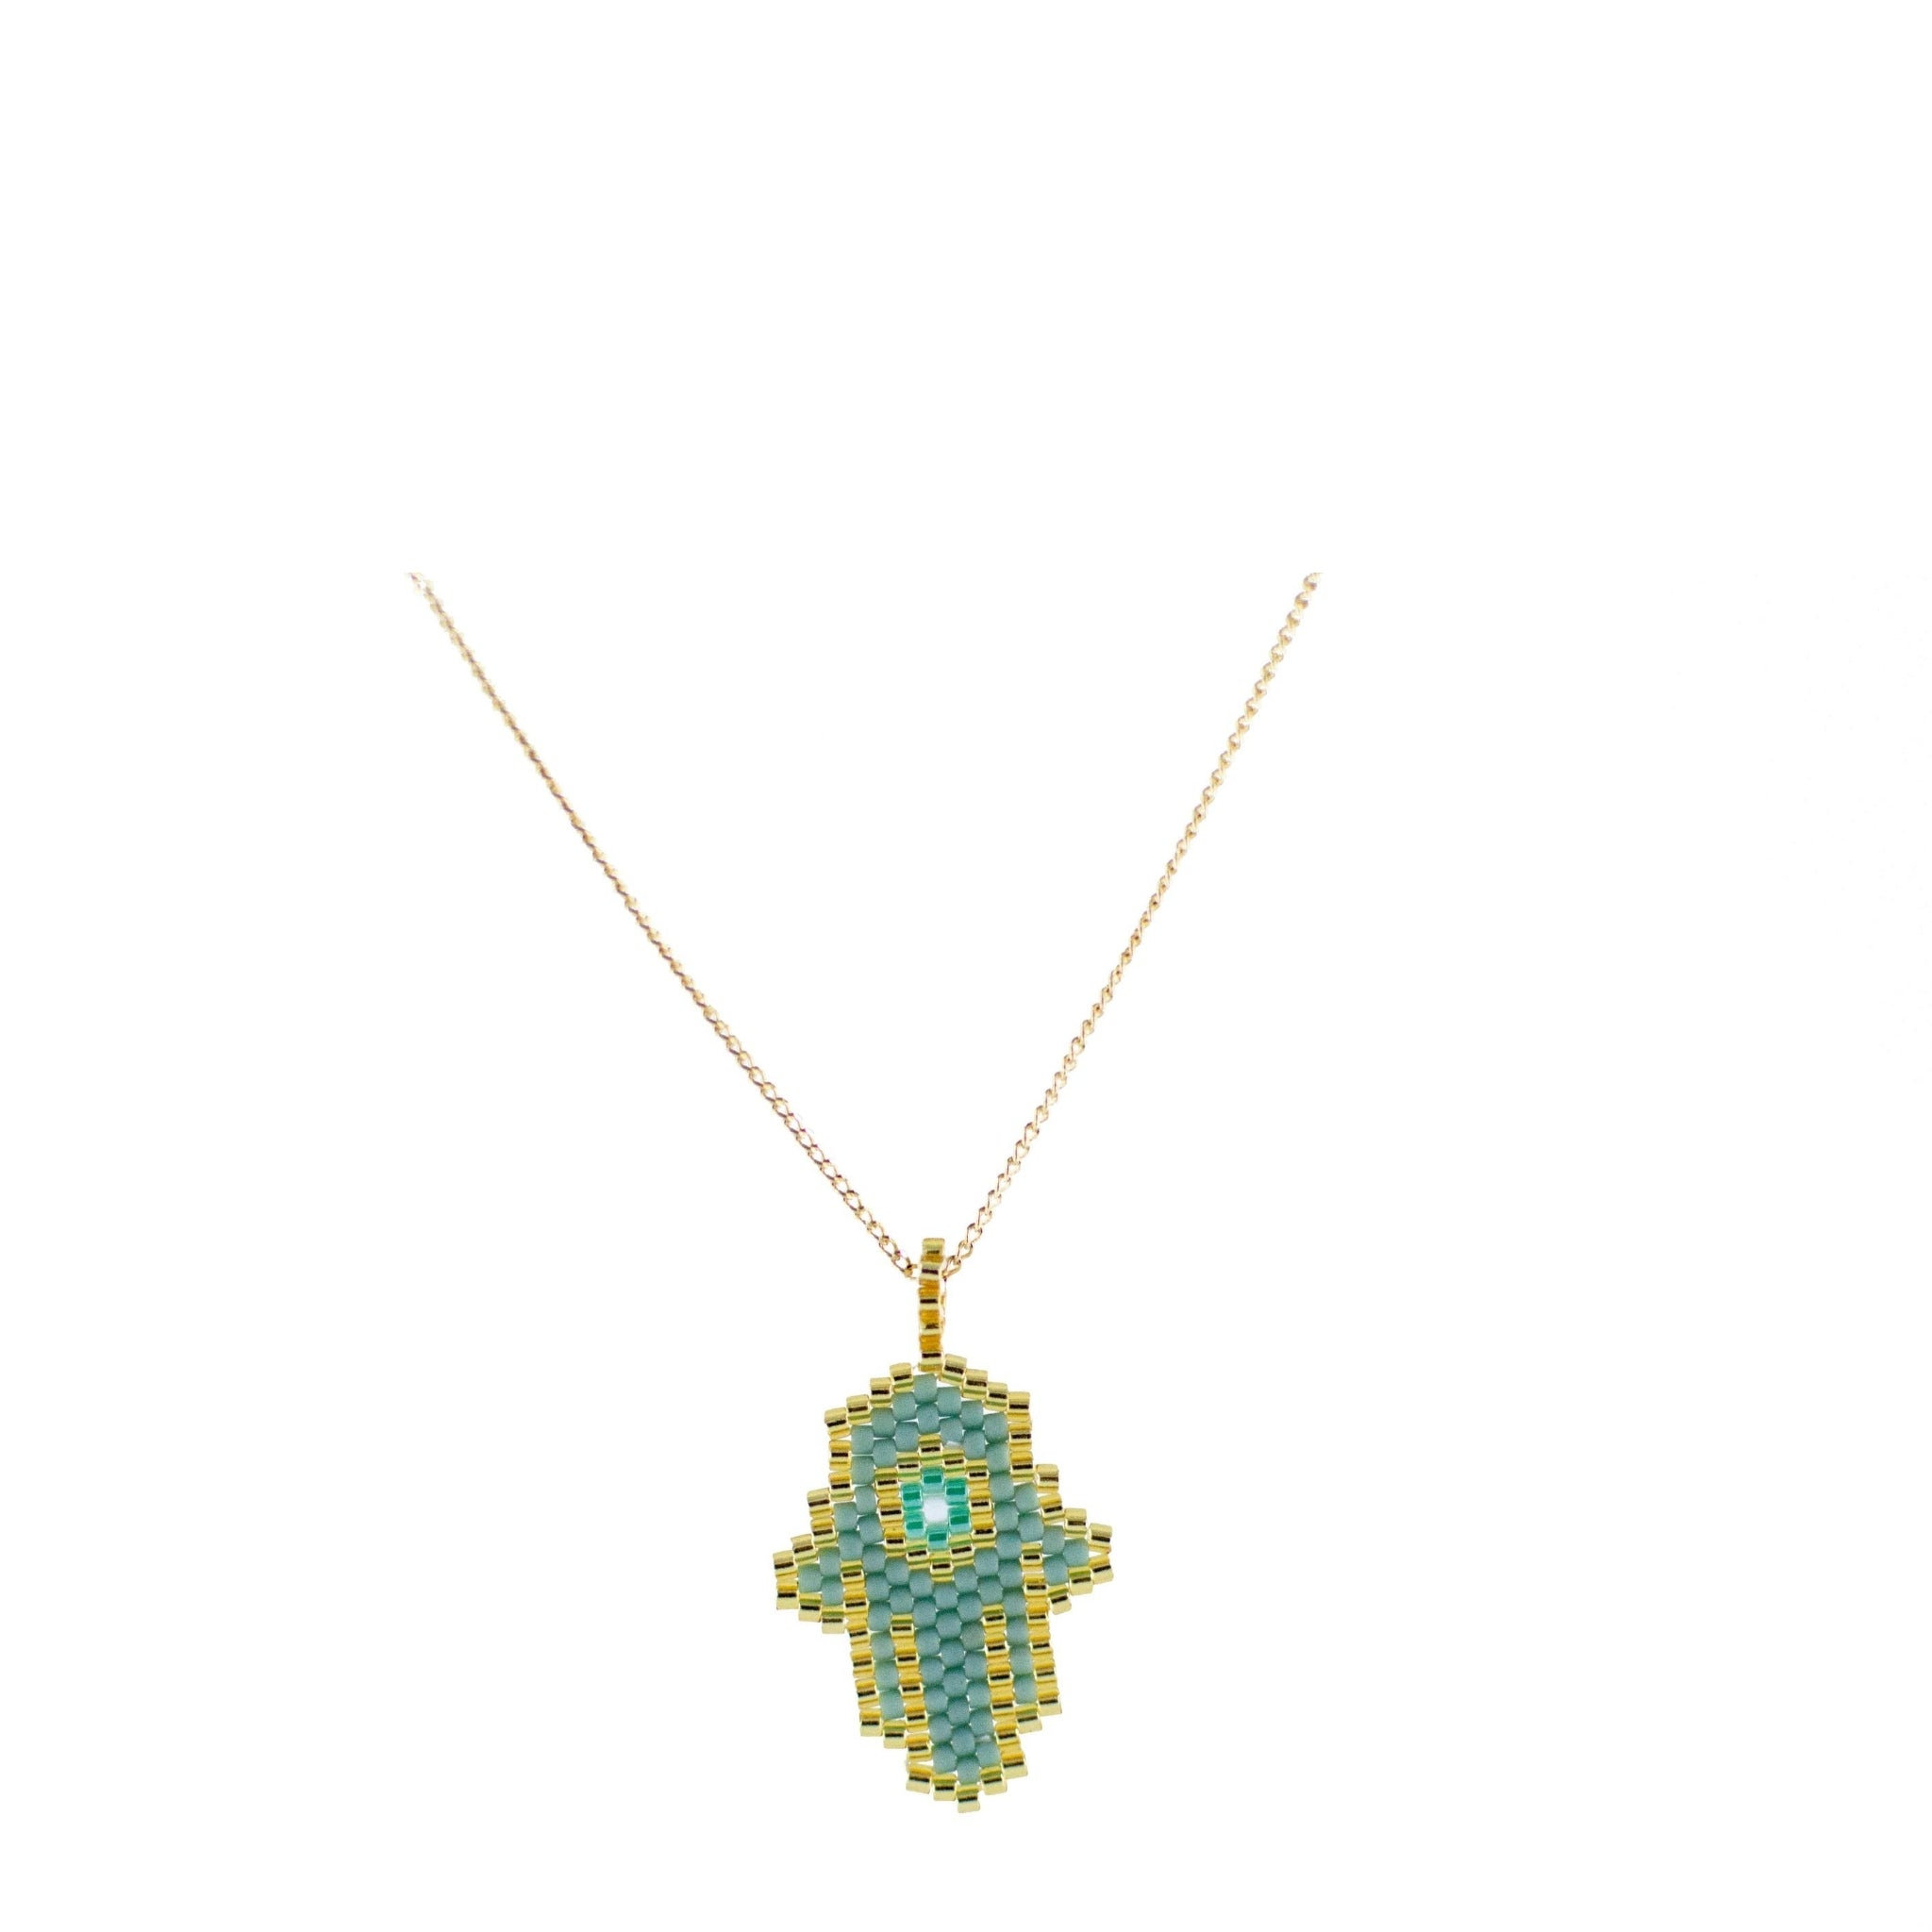 Hamsa Hand Necklace with Gold Plated Chain 1